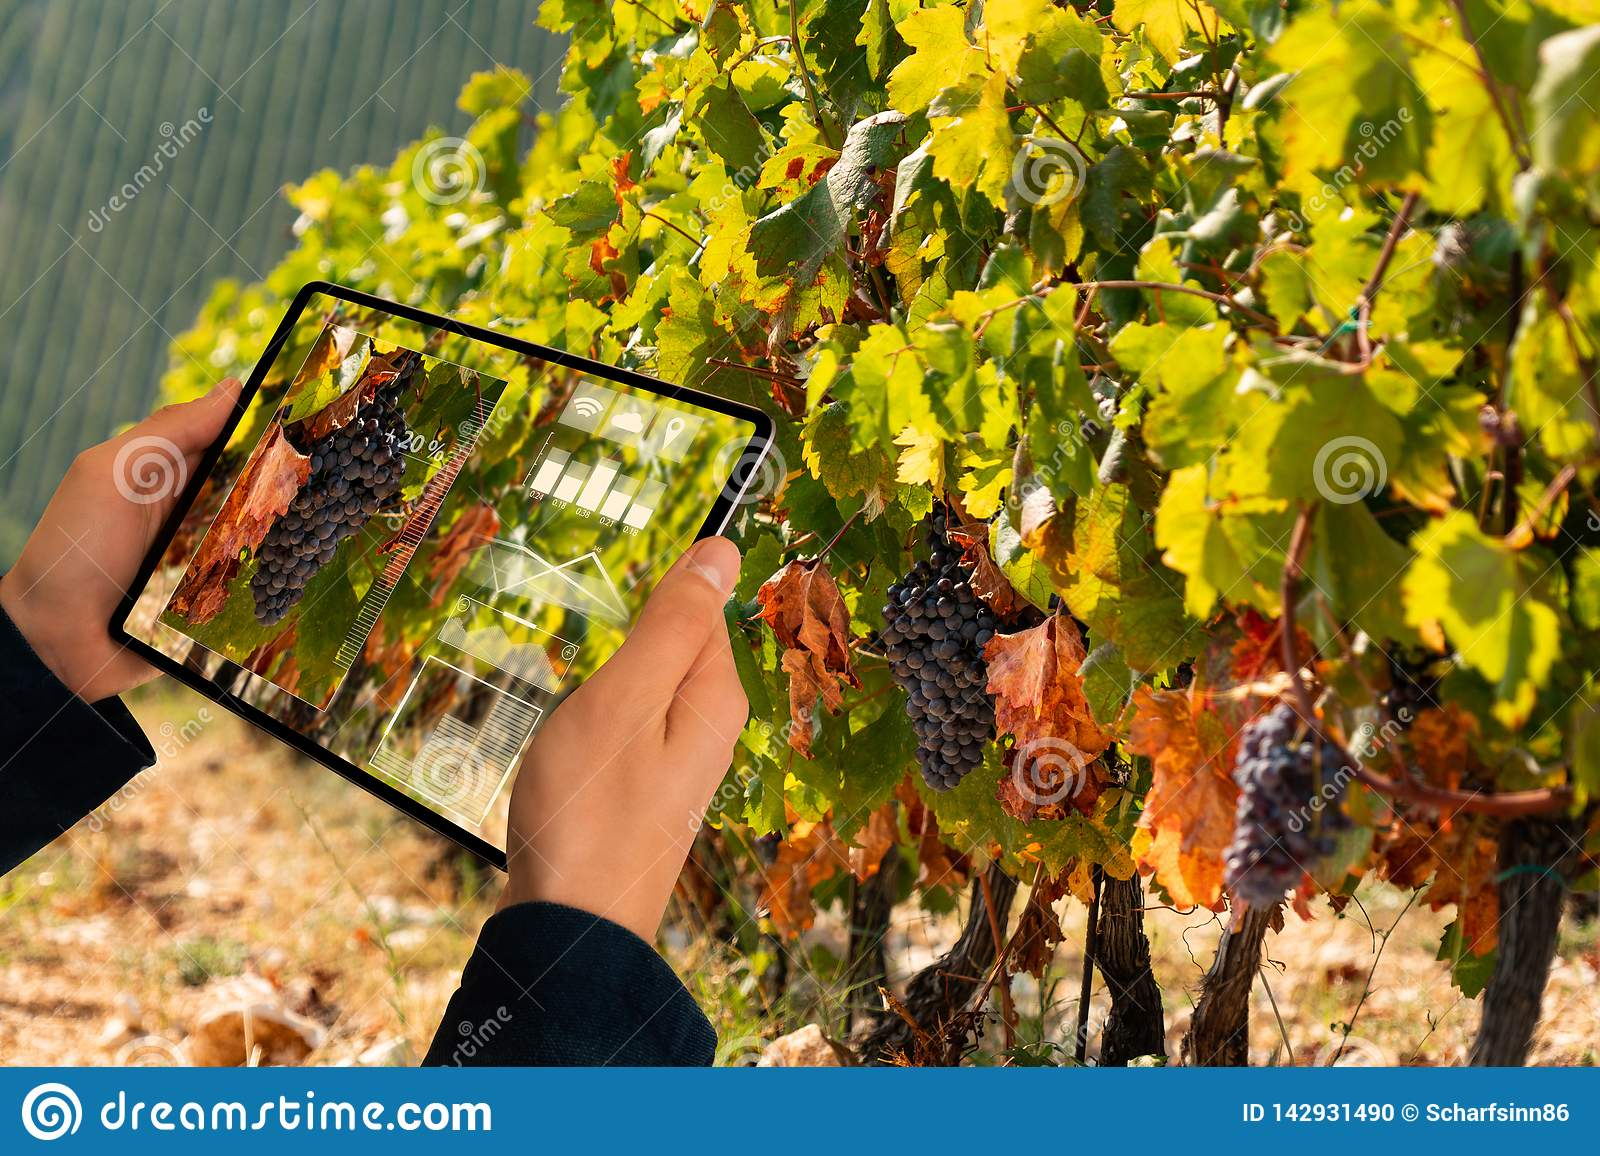 Smart Farming And Digital Agriculture Concept Stock Photo